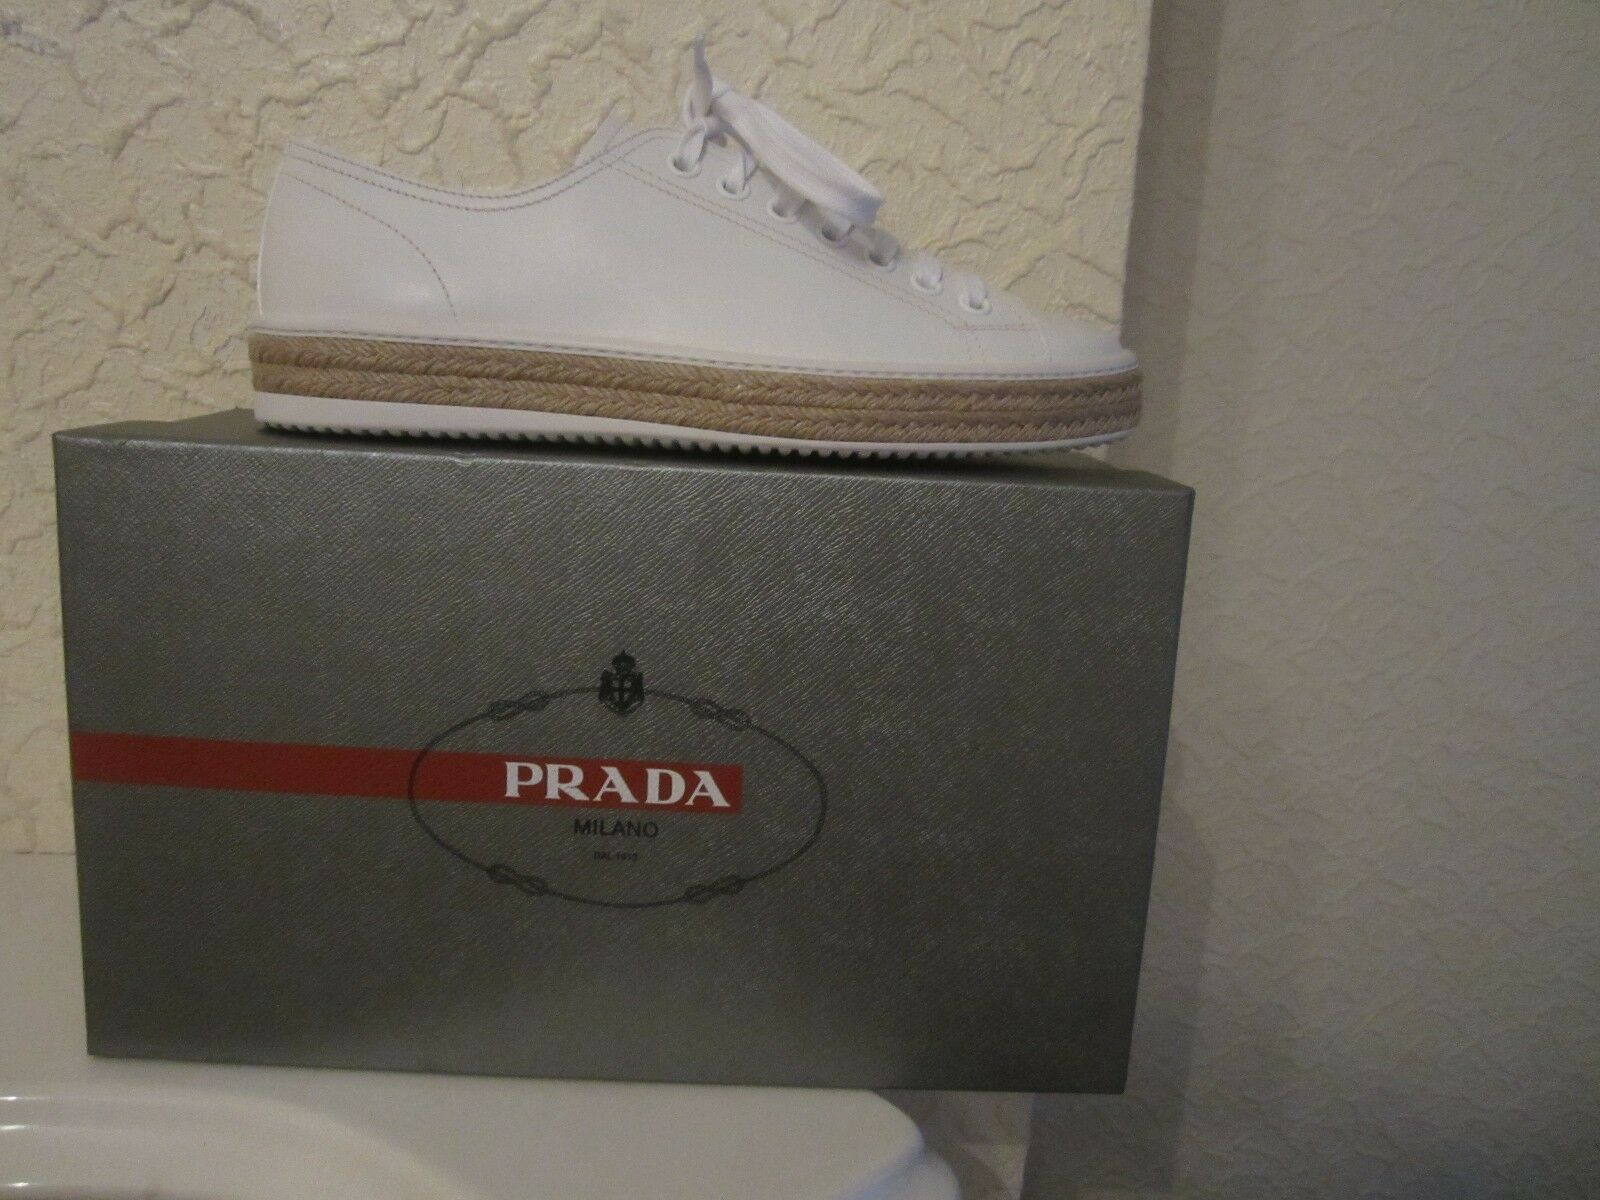 Prada Linea Rossa White Leather Espadrille Men's Sneakers